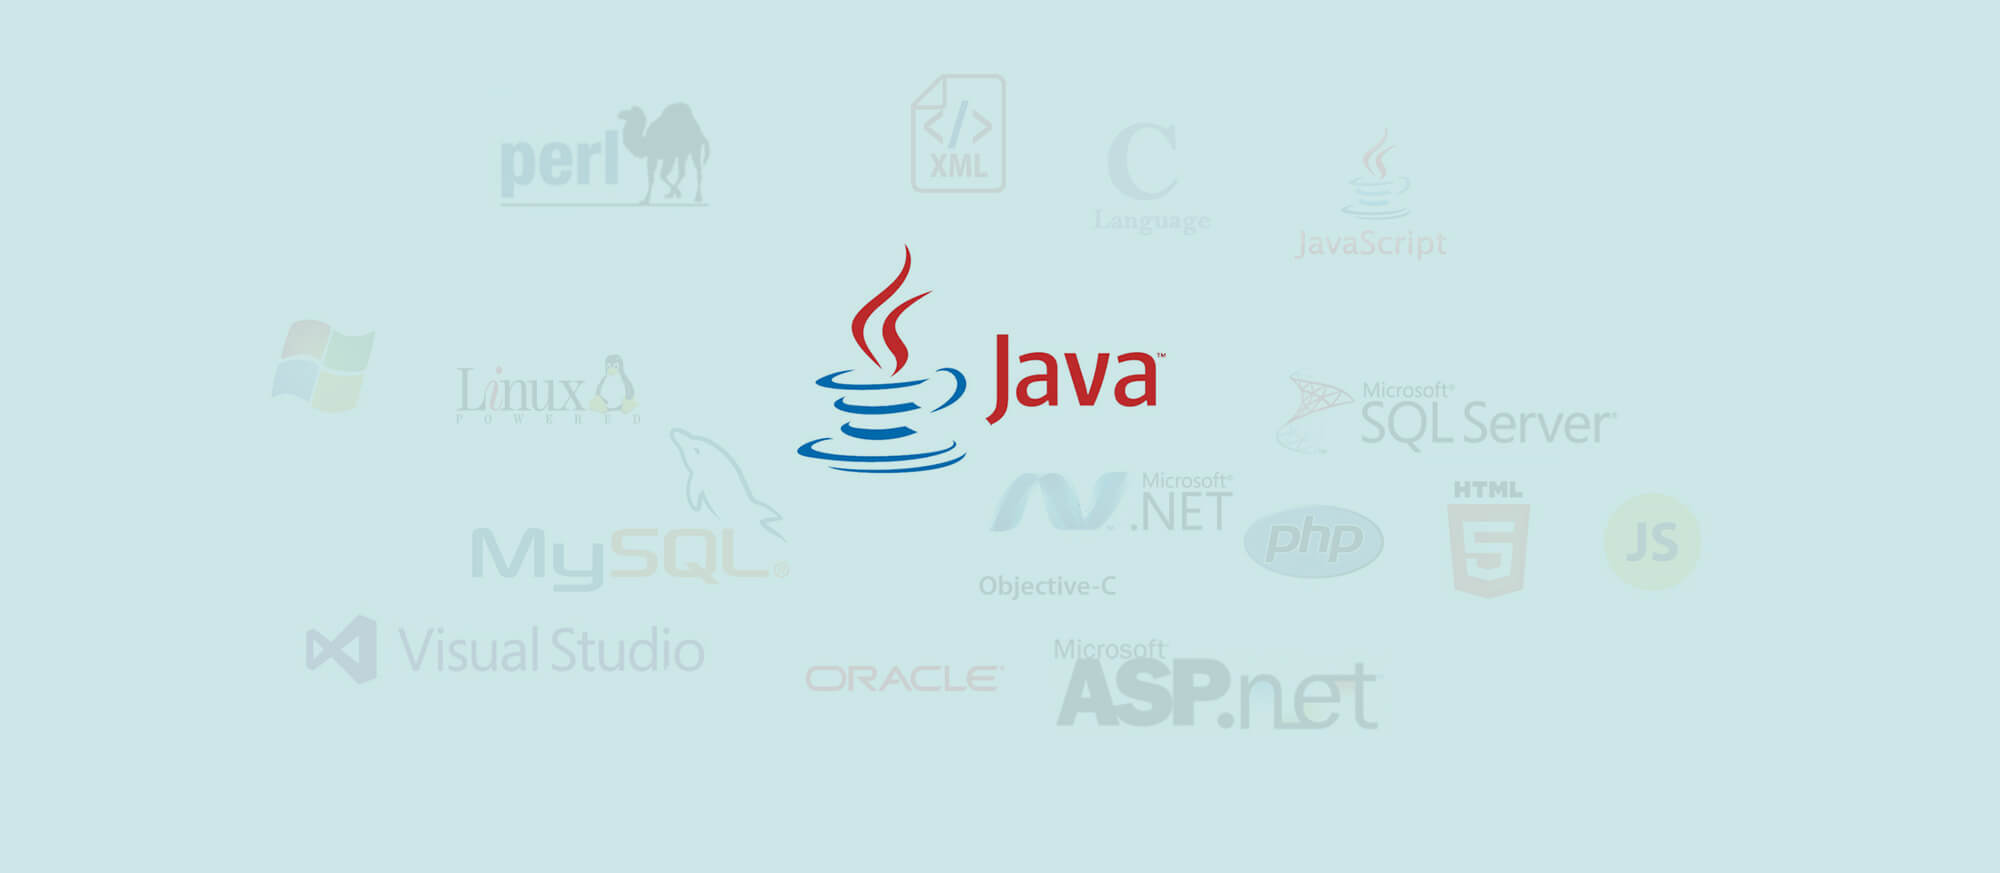 Sunnet has the experience to assist with Java programming.